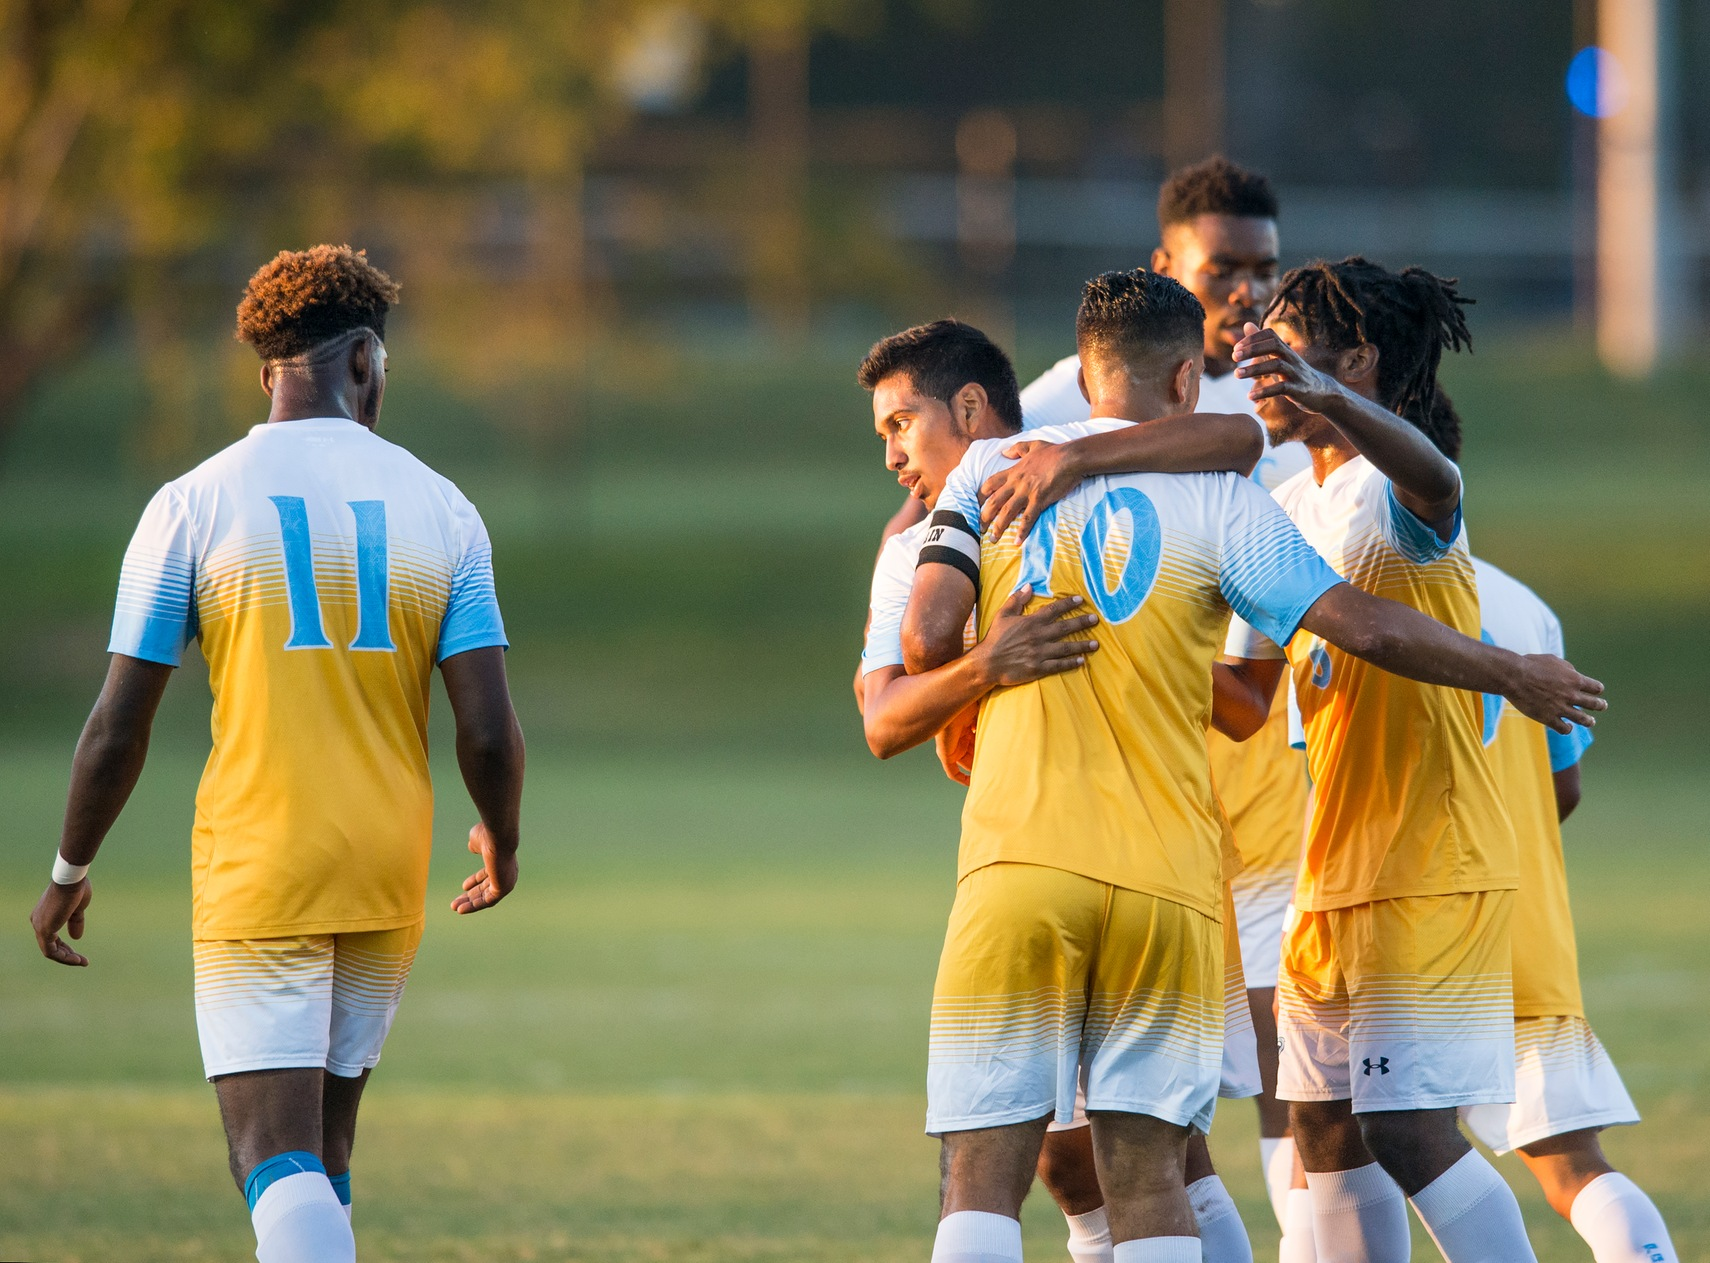 Prince George's Men's Soccer Moves Up To Eighth In NJCAA Men's Soccer Division III Rankings